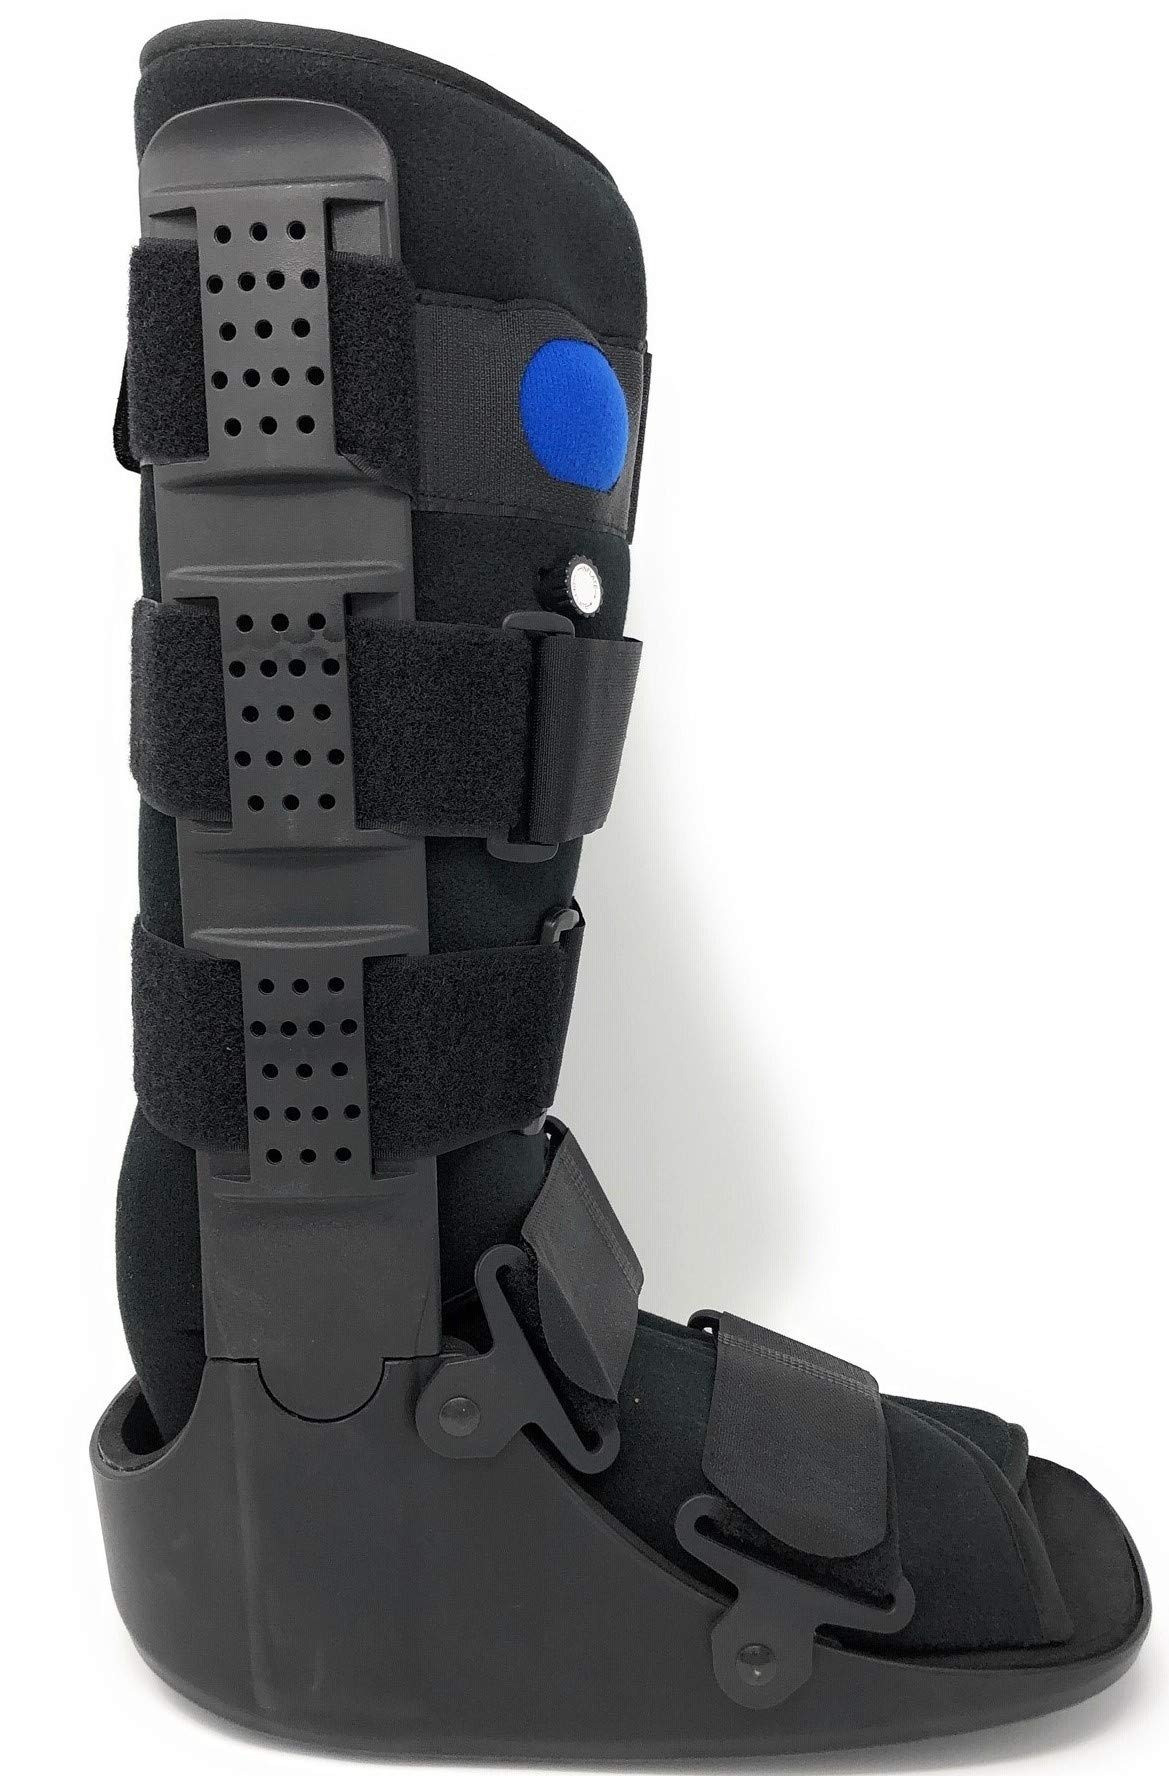 Superior Braces High Top, Low Profile Air Pump CAM Medical Orthopedic Walker Boot for Ankle & Foot Injuries (X-Small)